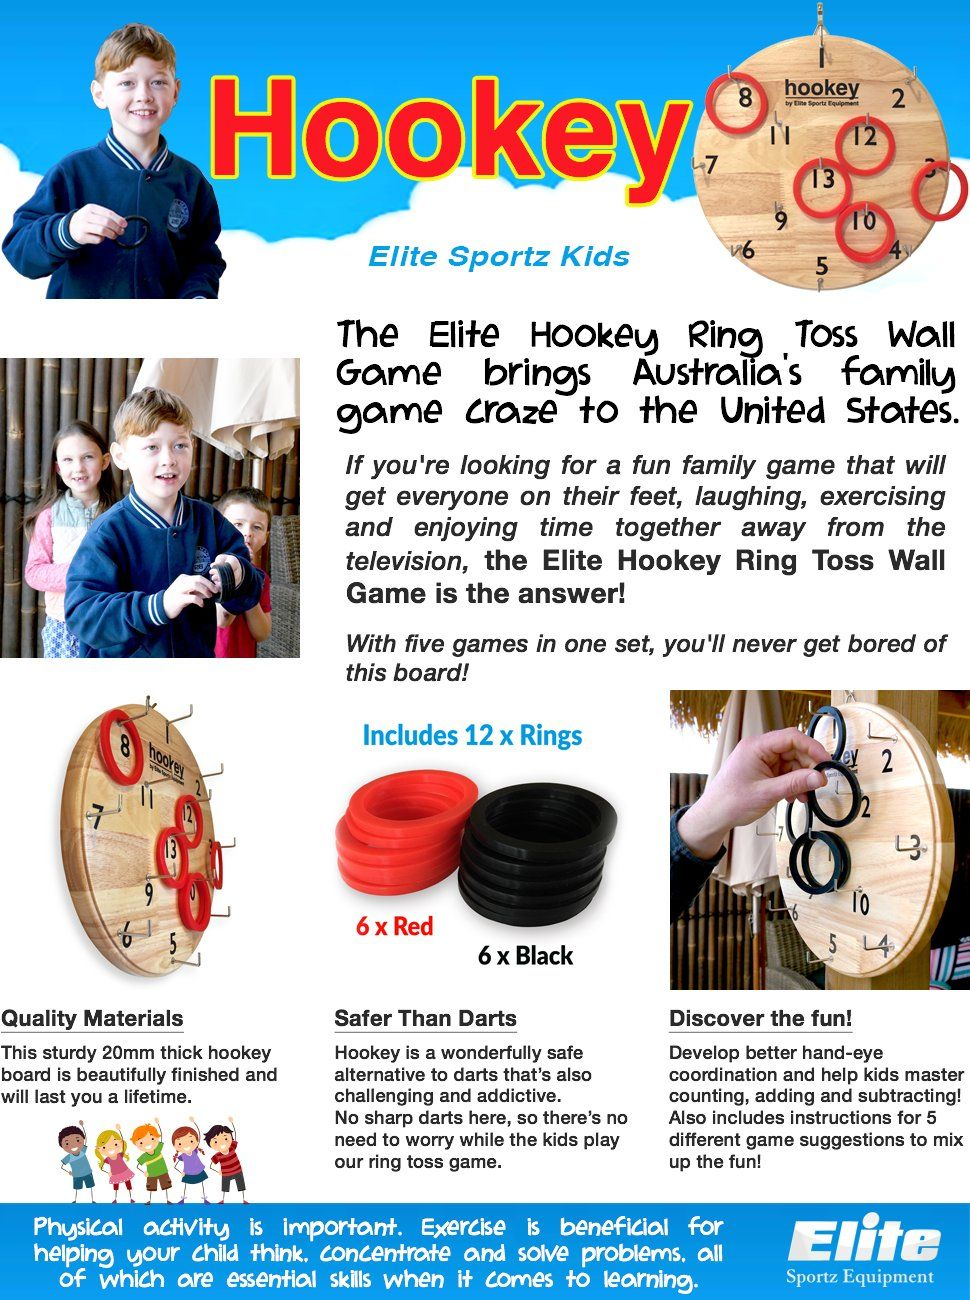 Amazon Com Elite Sportz Hookey Ring Toss Game Just Hang It On A Wall And Start Playing This Beautifully Finished Boa Games For Kids Safe Games Family Games